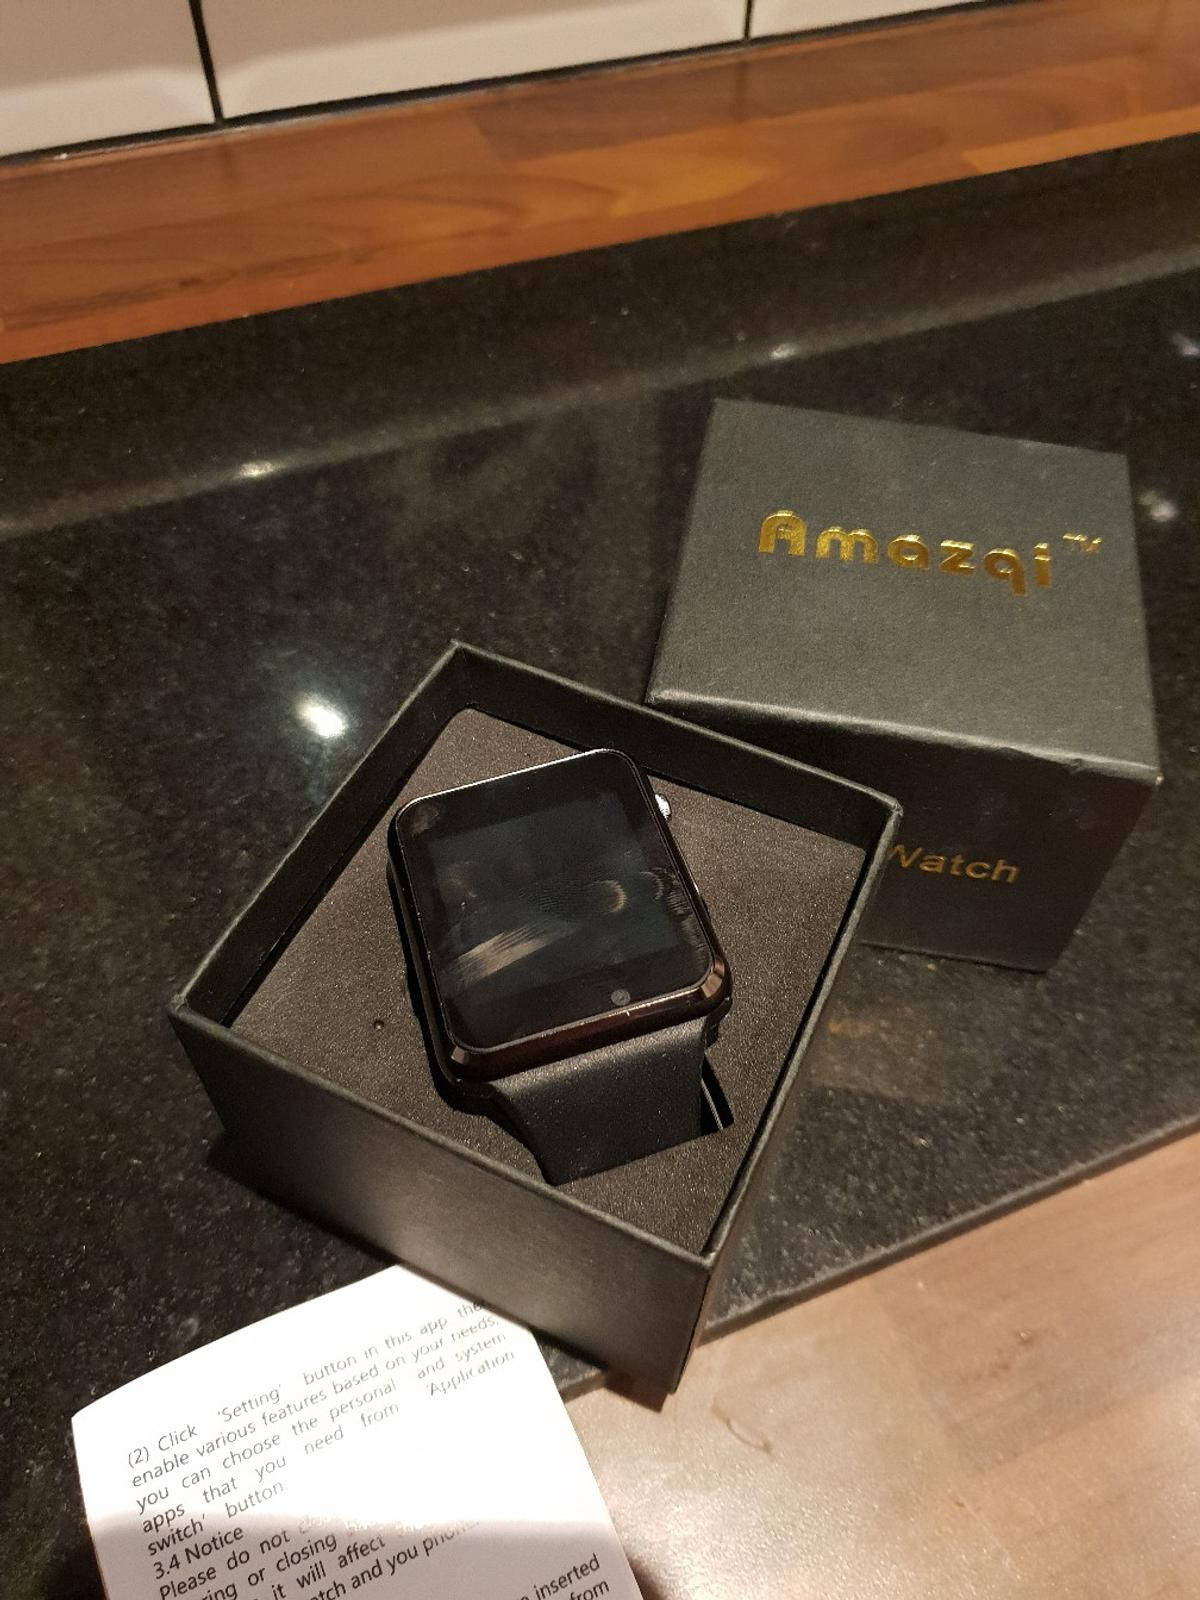 amazqi smart watch in DL3 Darlington for £30 00 for sale